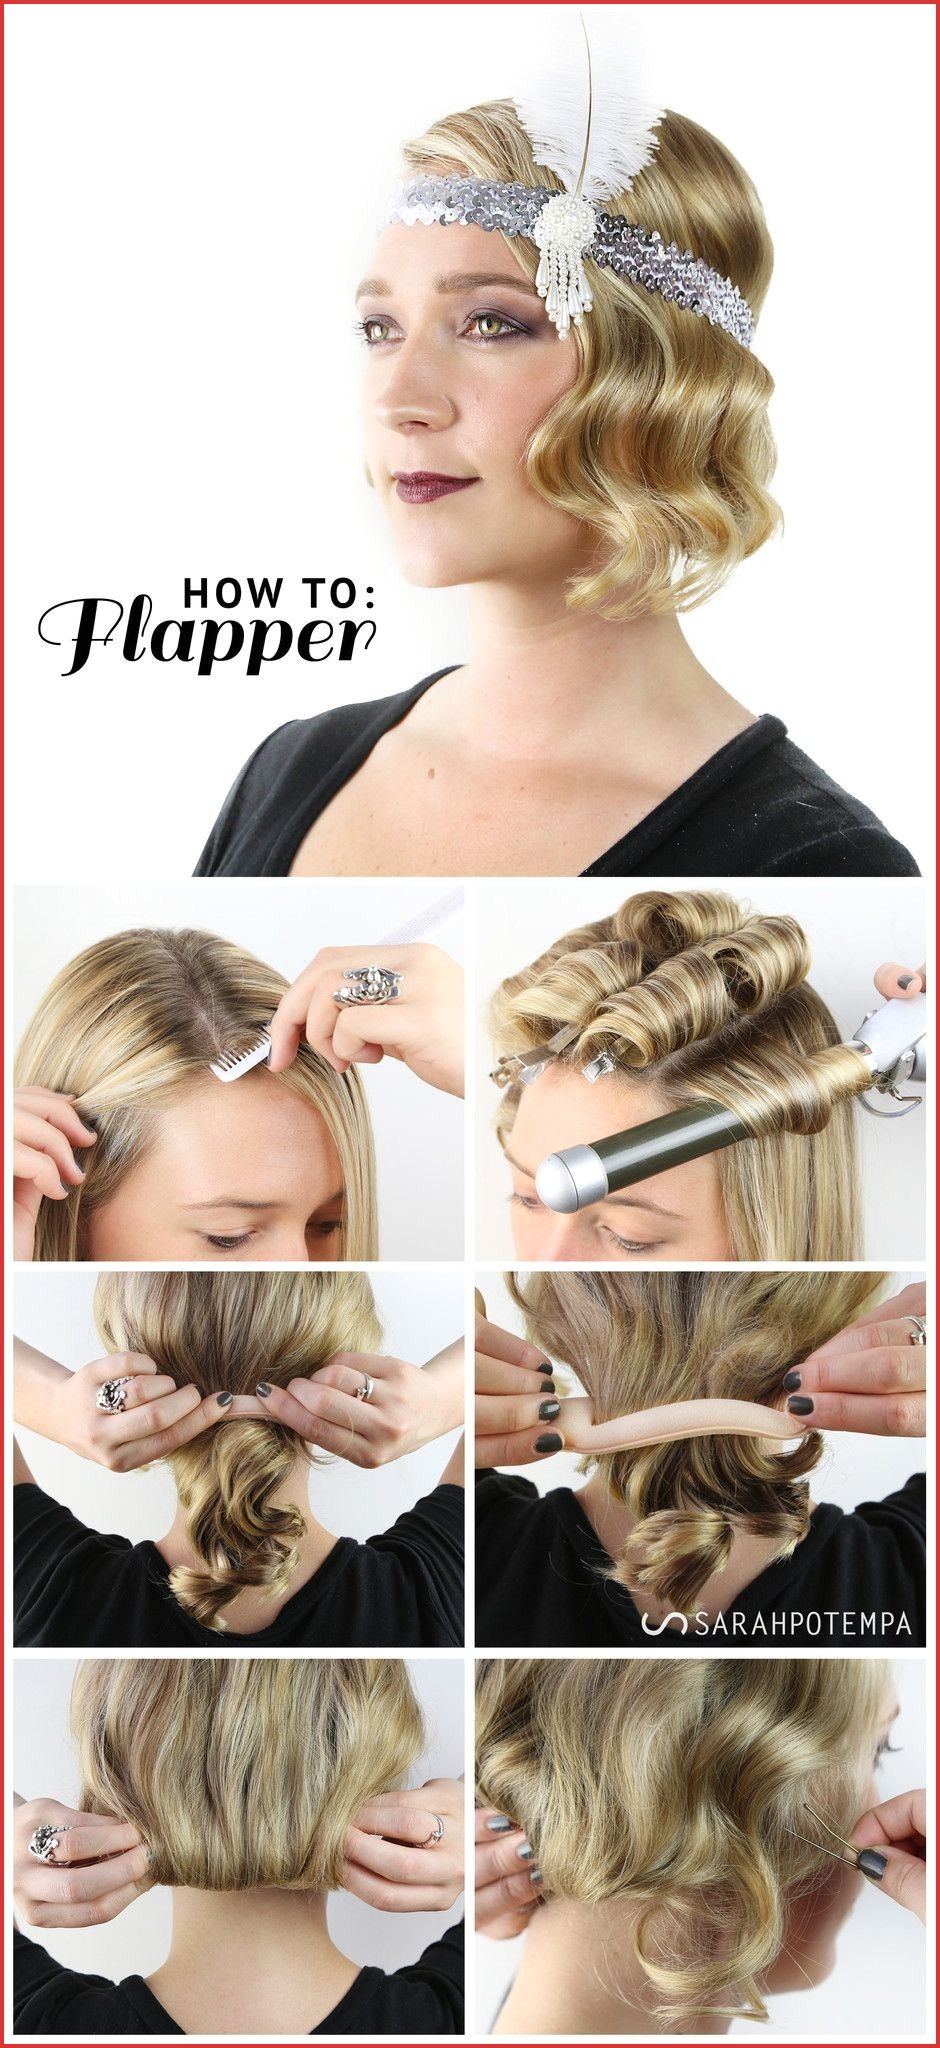 Finger Wave Hairstyle Photos 158932 Flapper Girl Hairstyles Of Finger Wave Hairstyle Photos 158932 Fi Gatsby Hair Vintage Hairstyles For Long Hair Flapper Hair